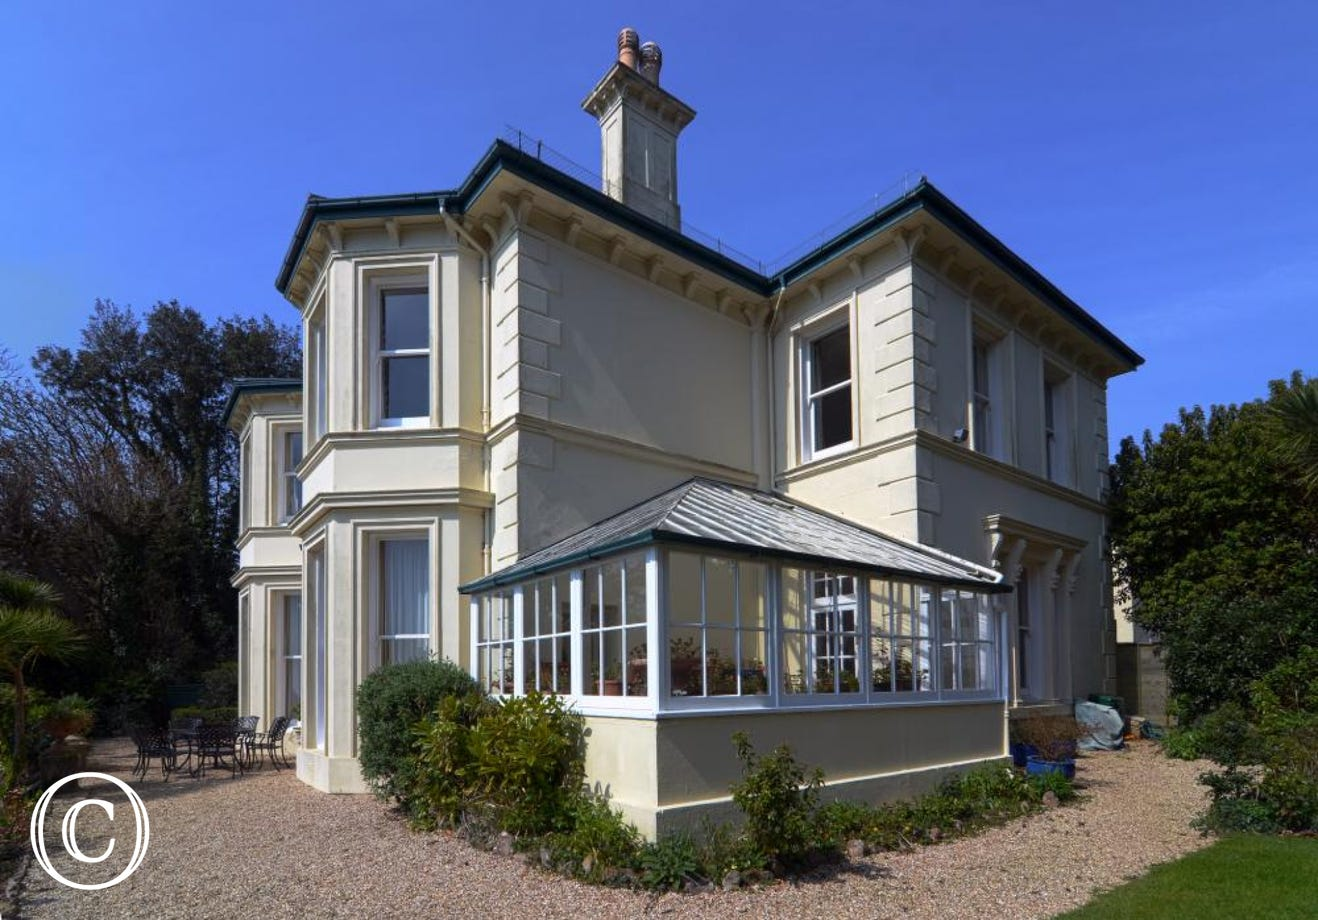 Longcroft House, Torquay - Exterior of property with conservatory